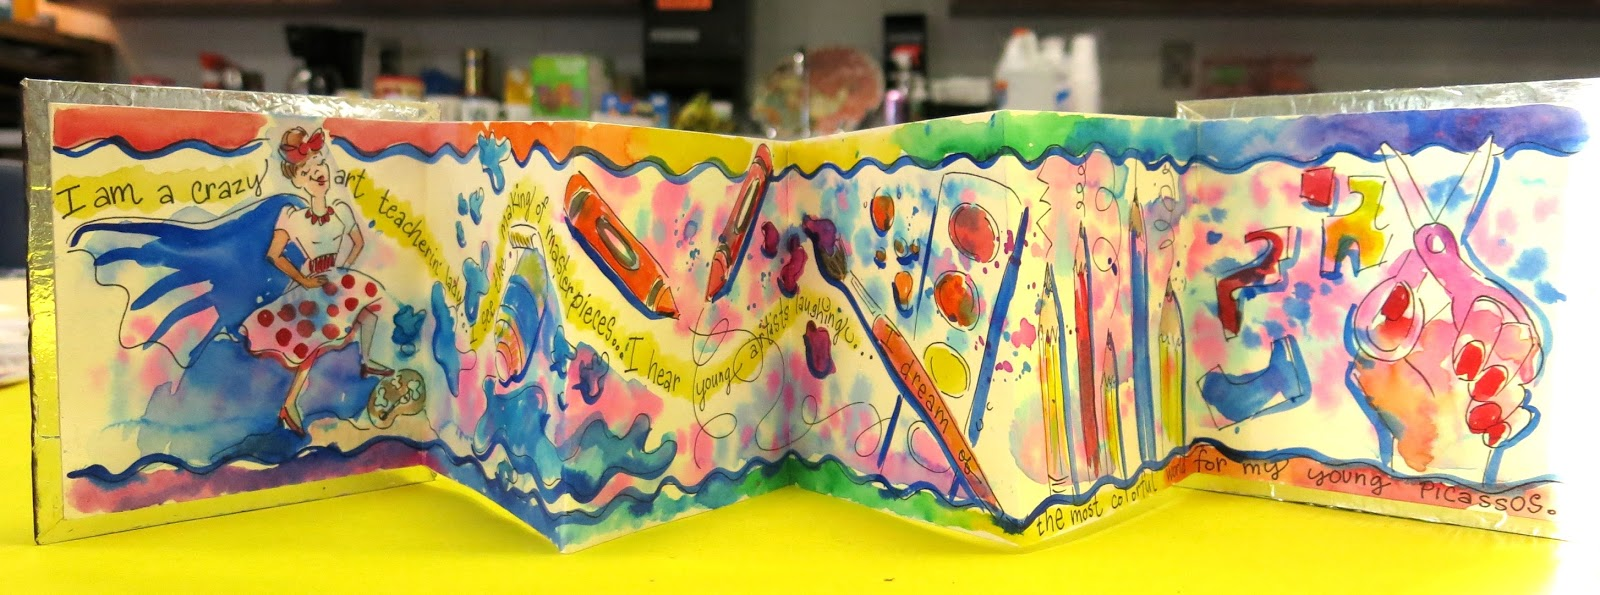 cassie stephens 4th grade art projects